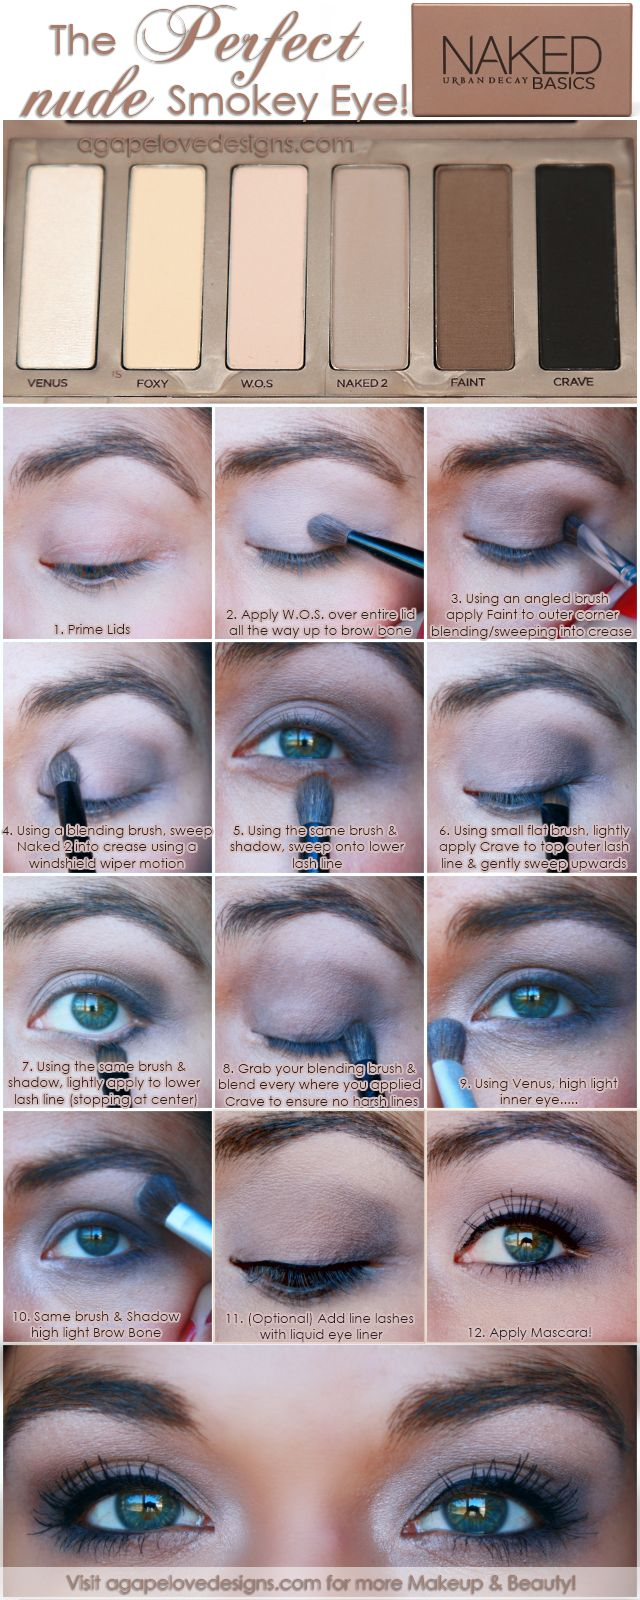 Agape Love Designs: The Perfect Nude Smokey Eye